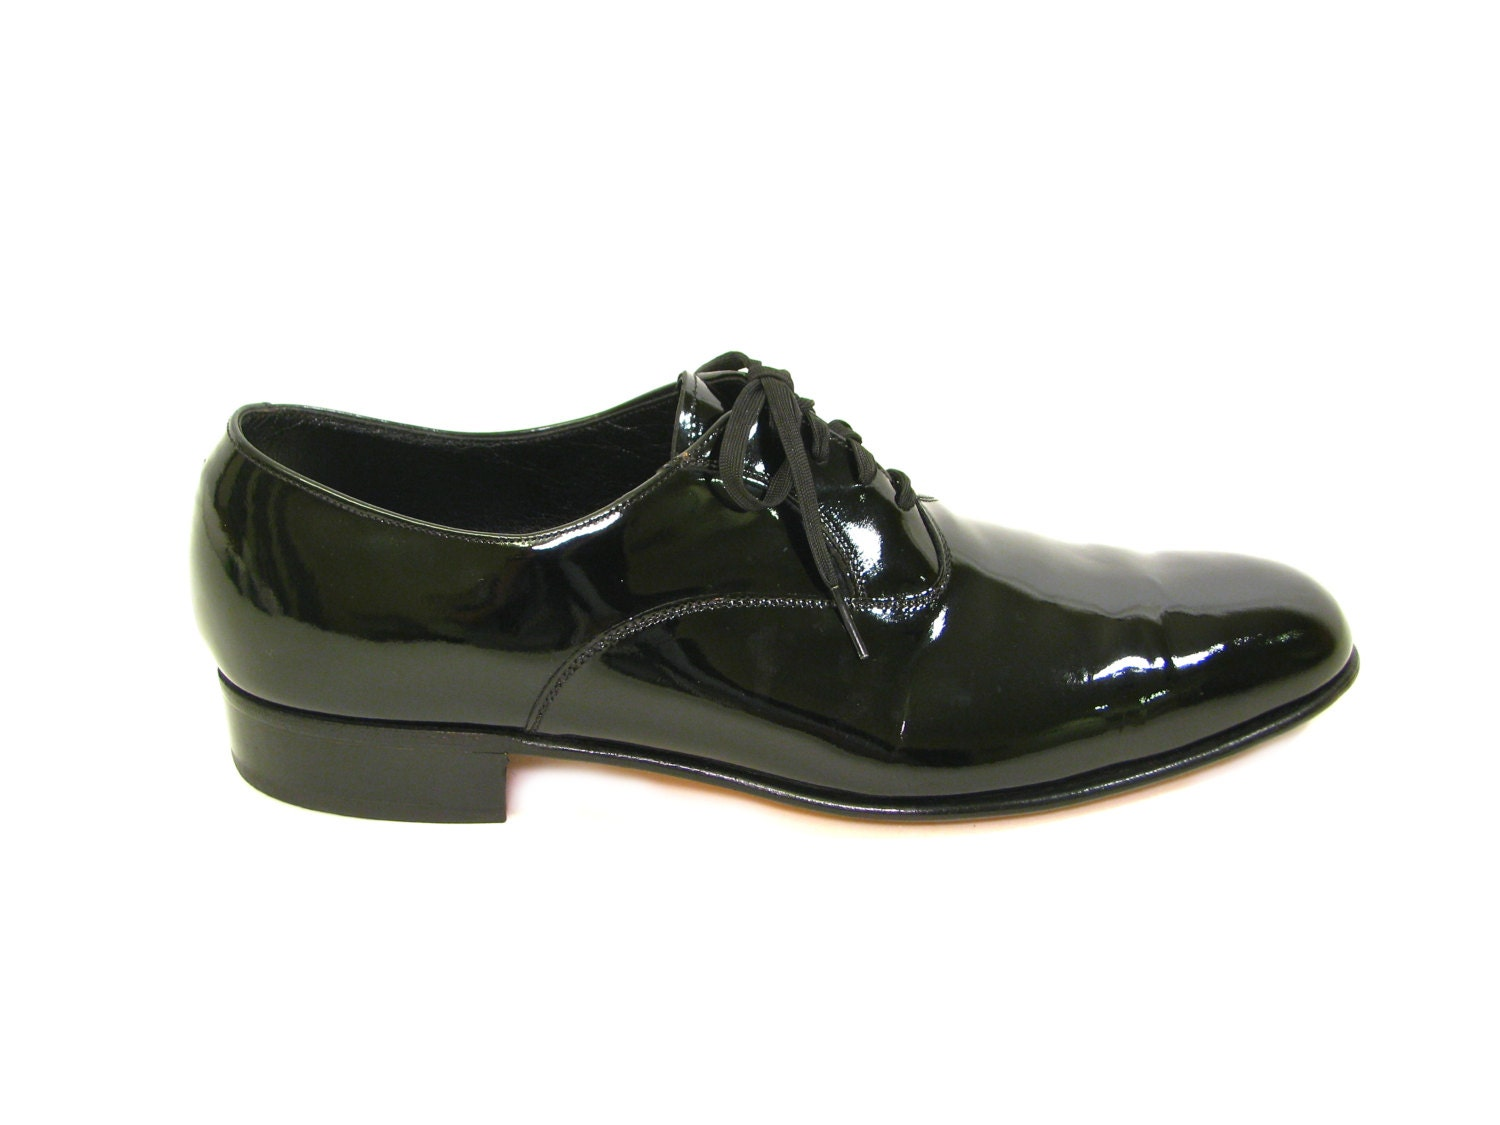 johnston and murphy tuxedo shoes wedding day formal patent